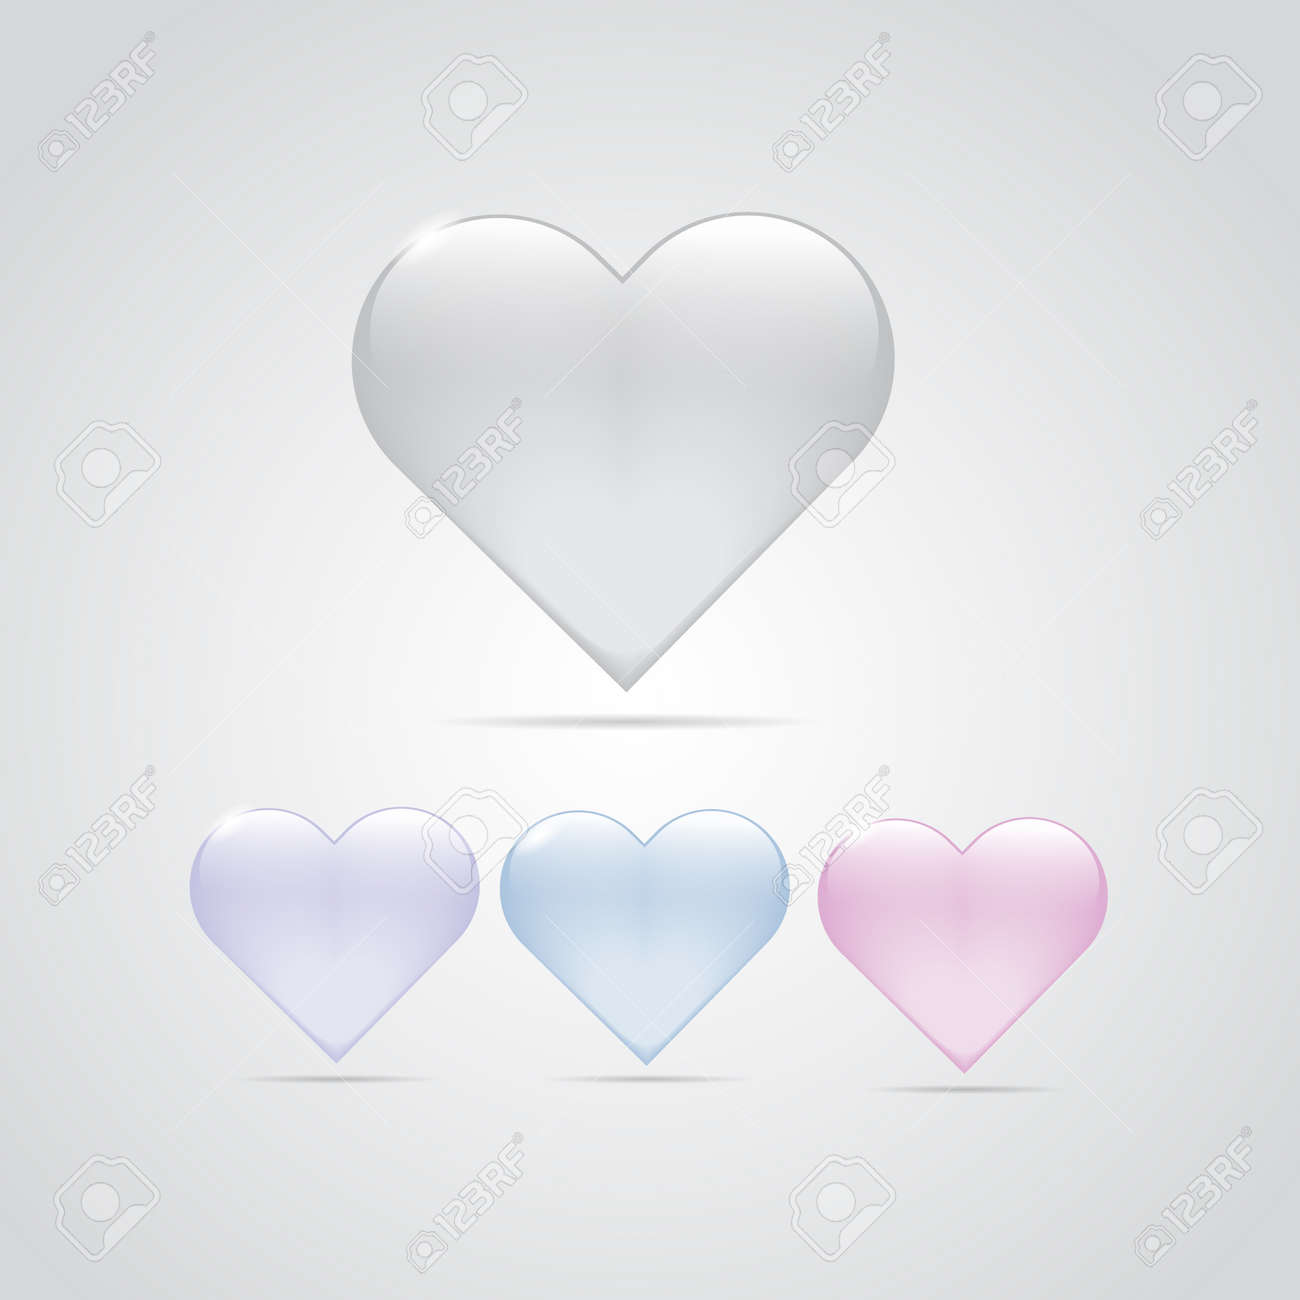 Glossy Glass Heart Symbol Of Love Romance Relation Icon Abstract